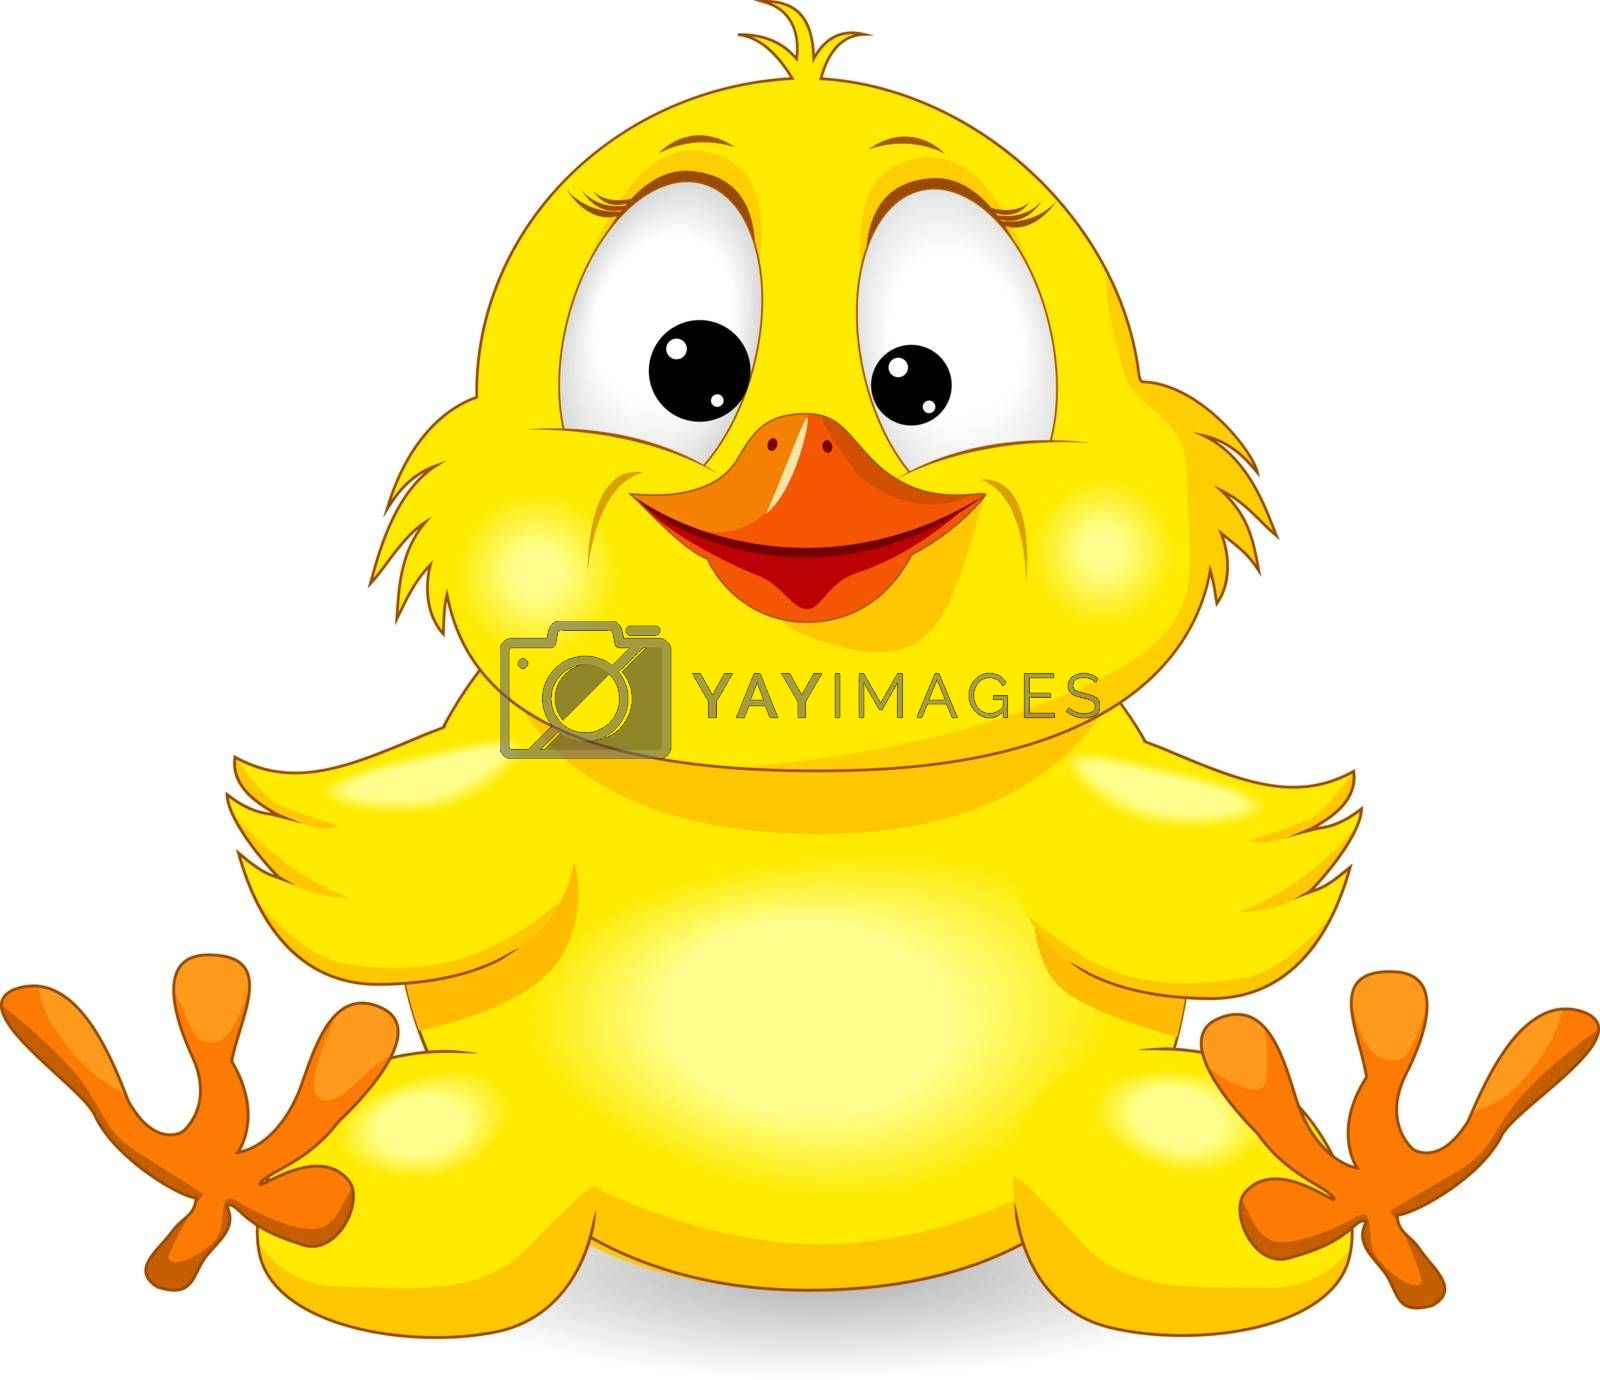 Little yellow chick on a white background. Cartoon chick.